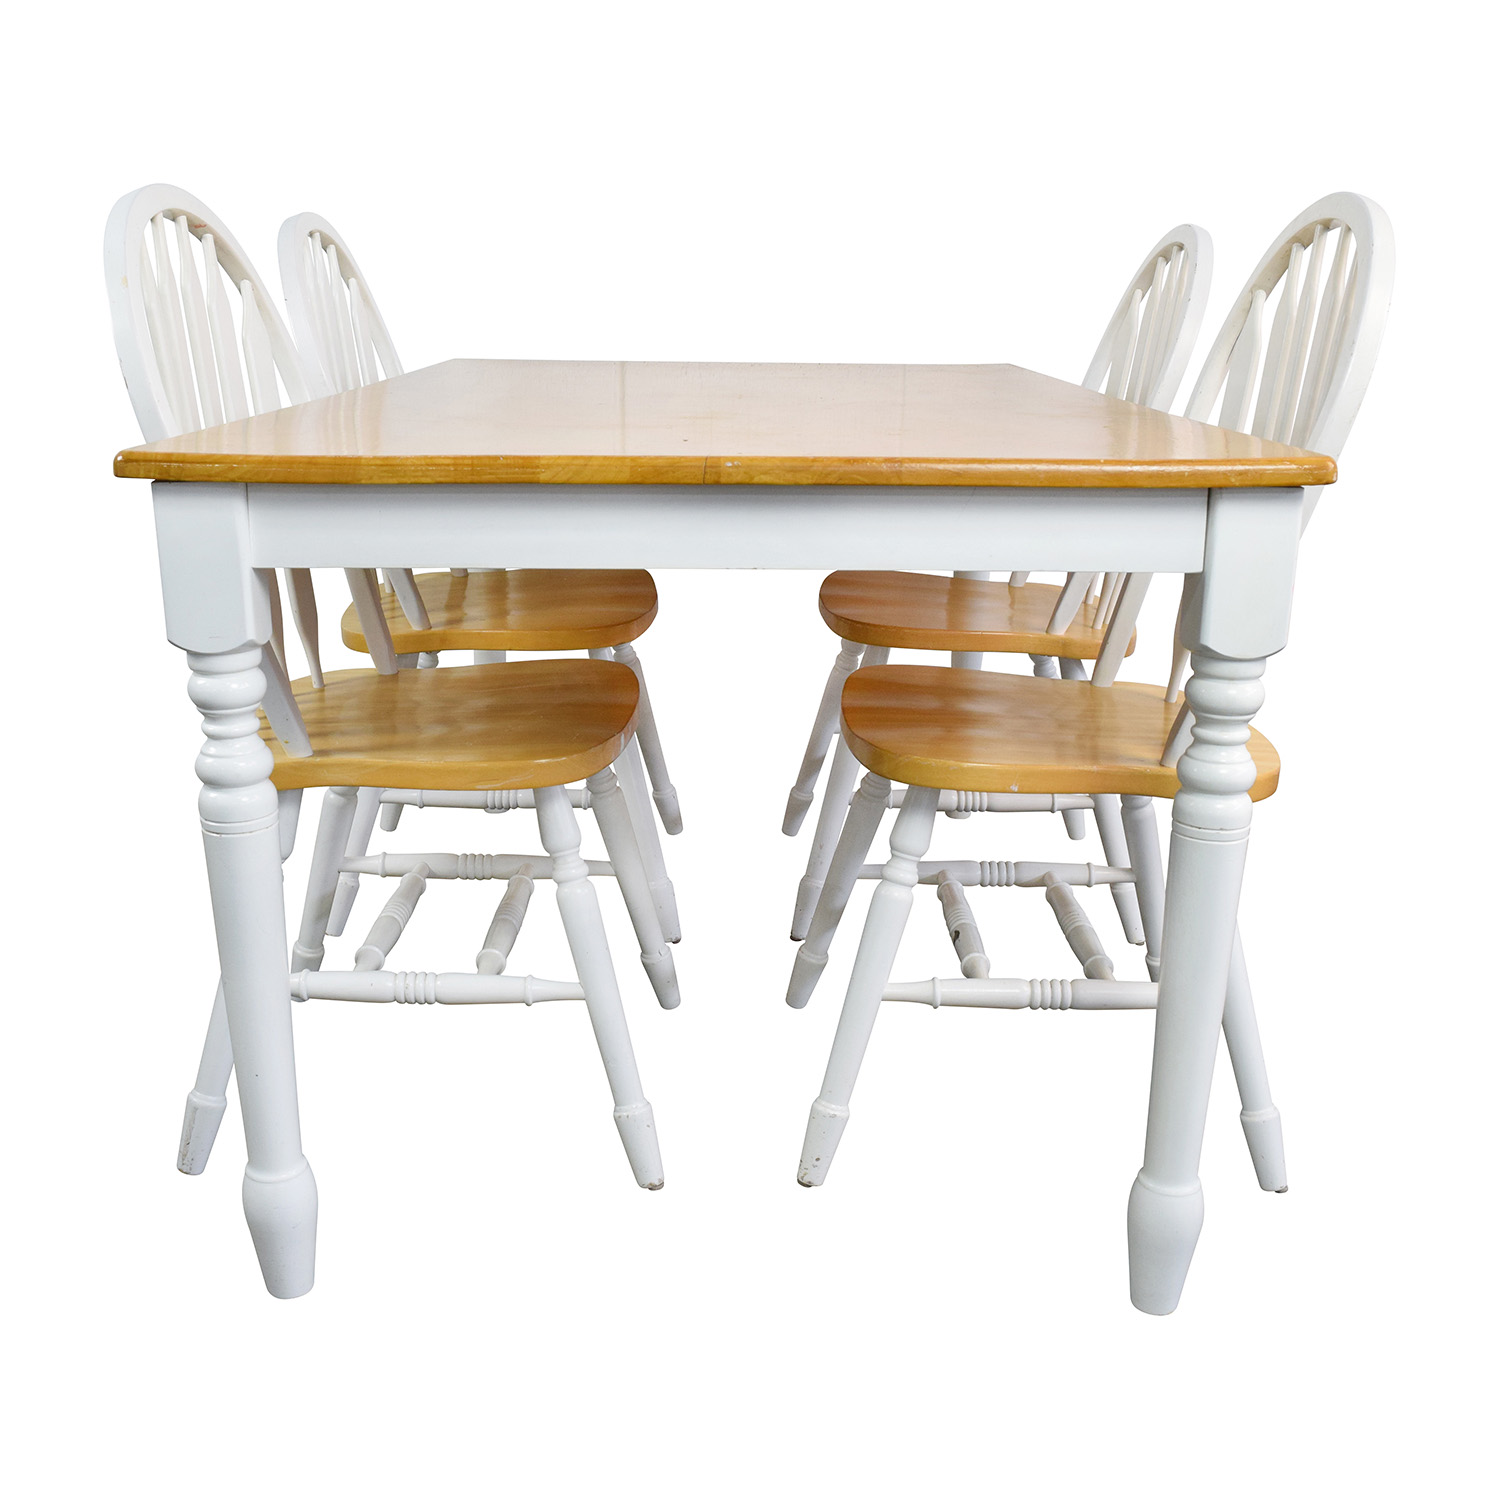 White and Natural Wood Color Dining set nyc